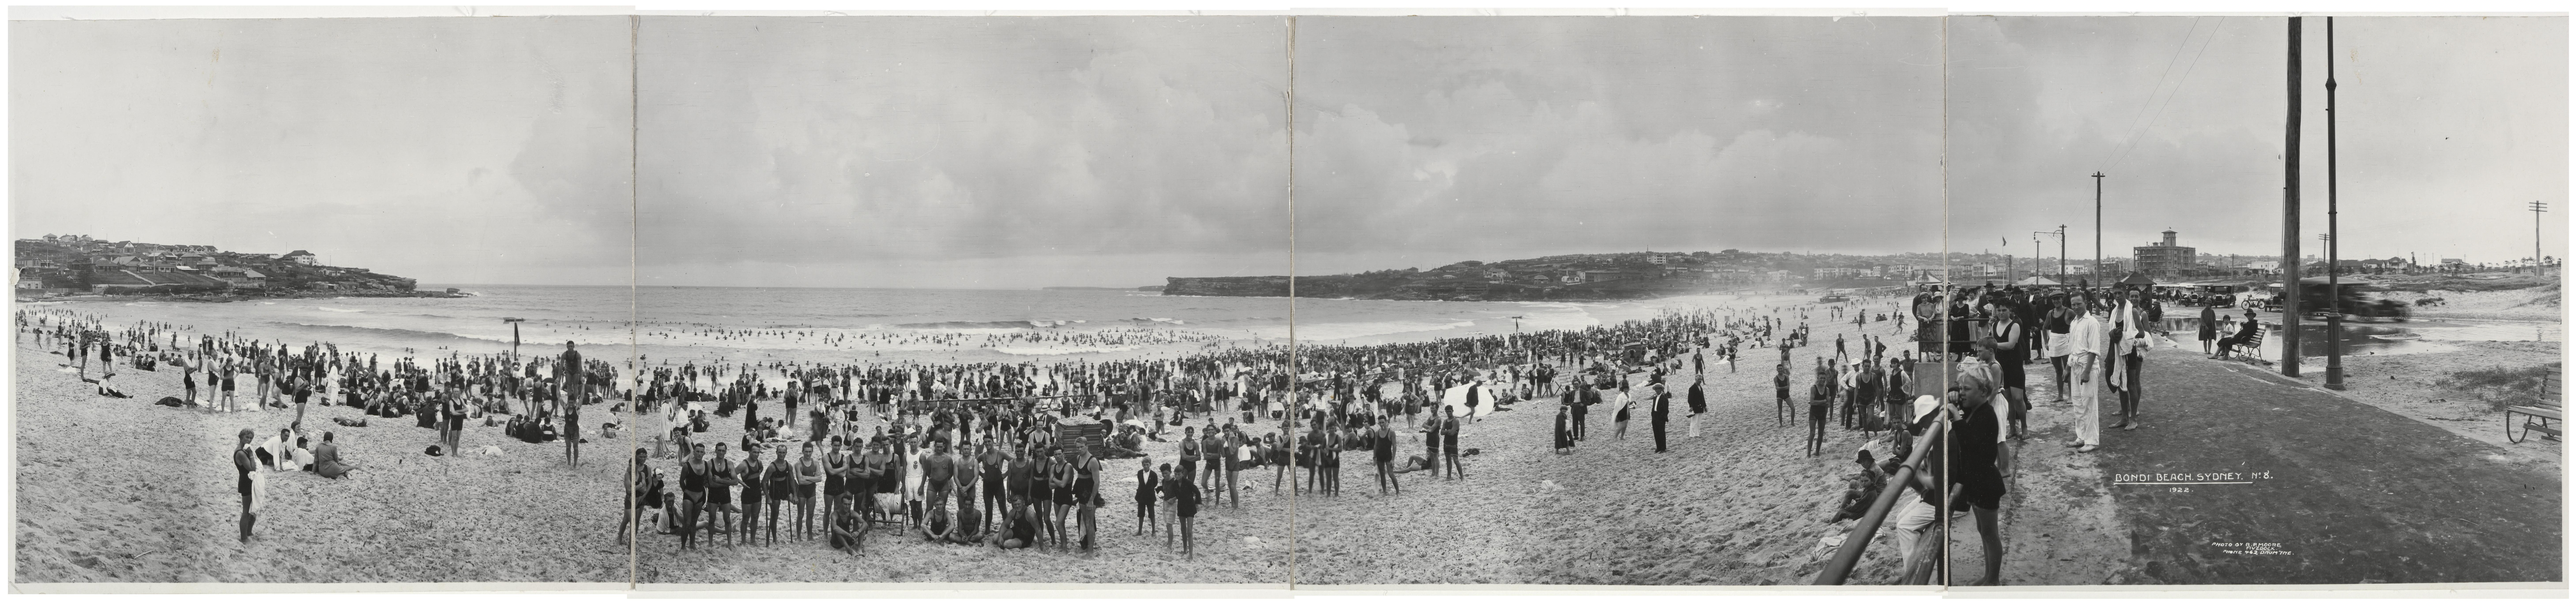 Bondi Beach, Sydney, 1922 / photographed by R. P. Moore